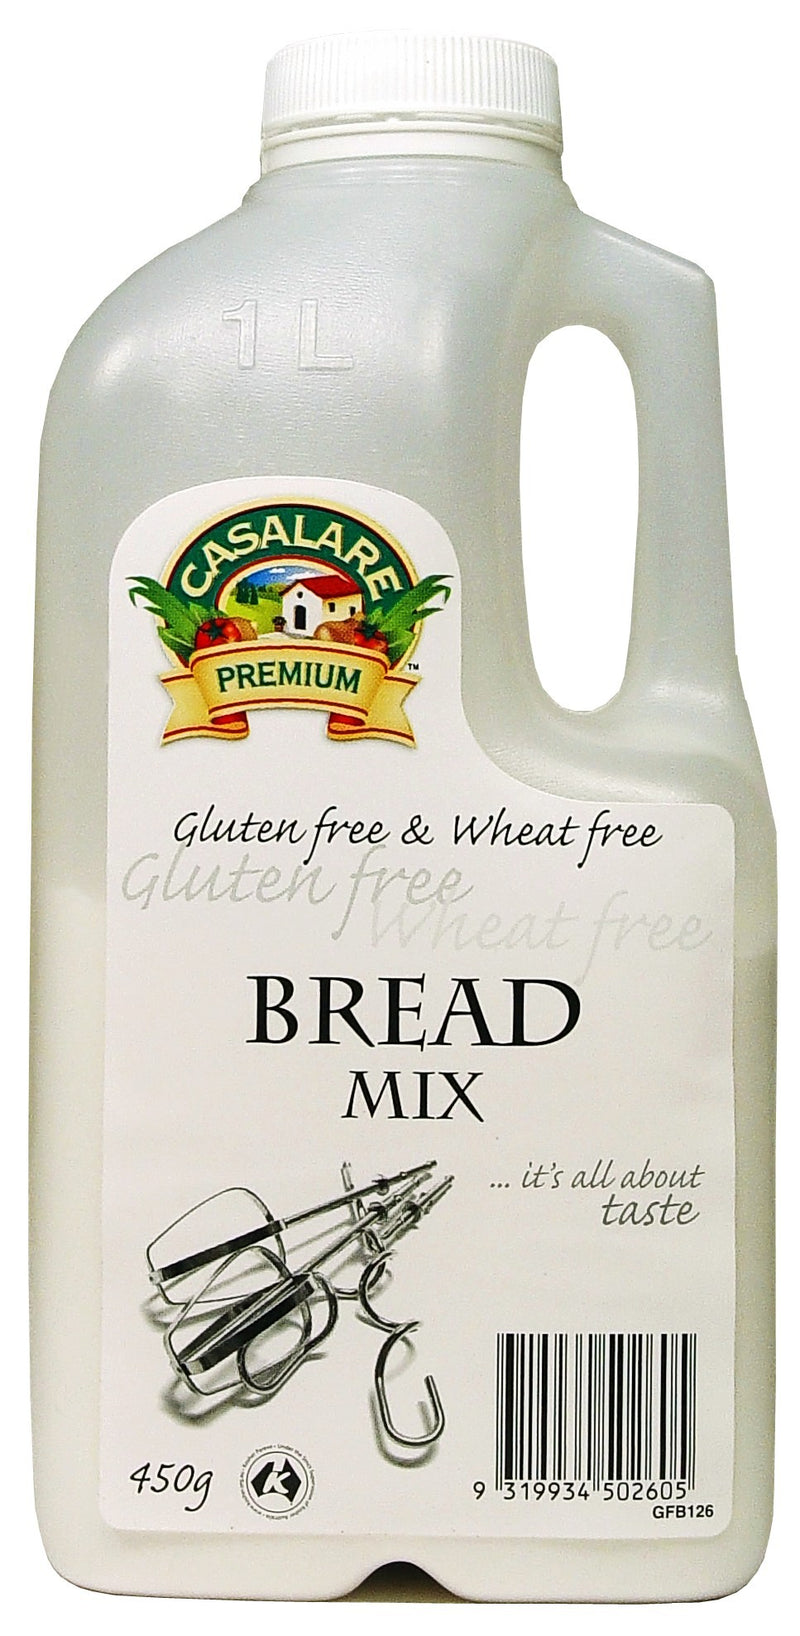 Casalare, Bread Mix, Gluten Free & Wheat Free, 450 g